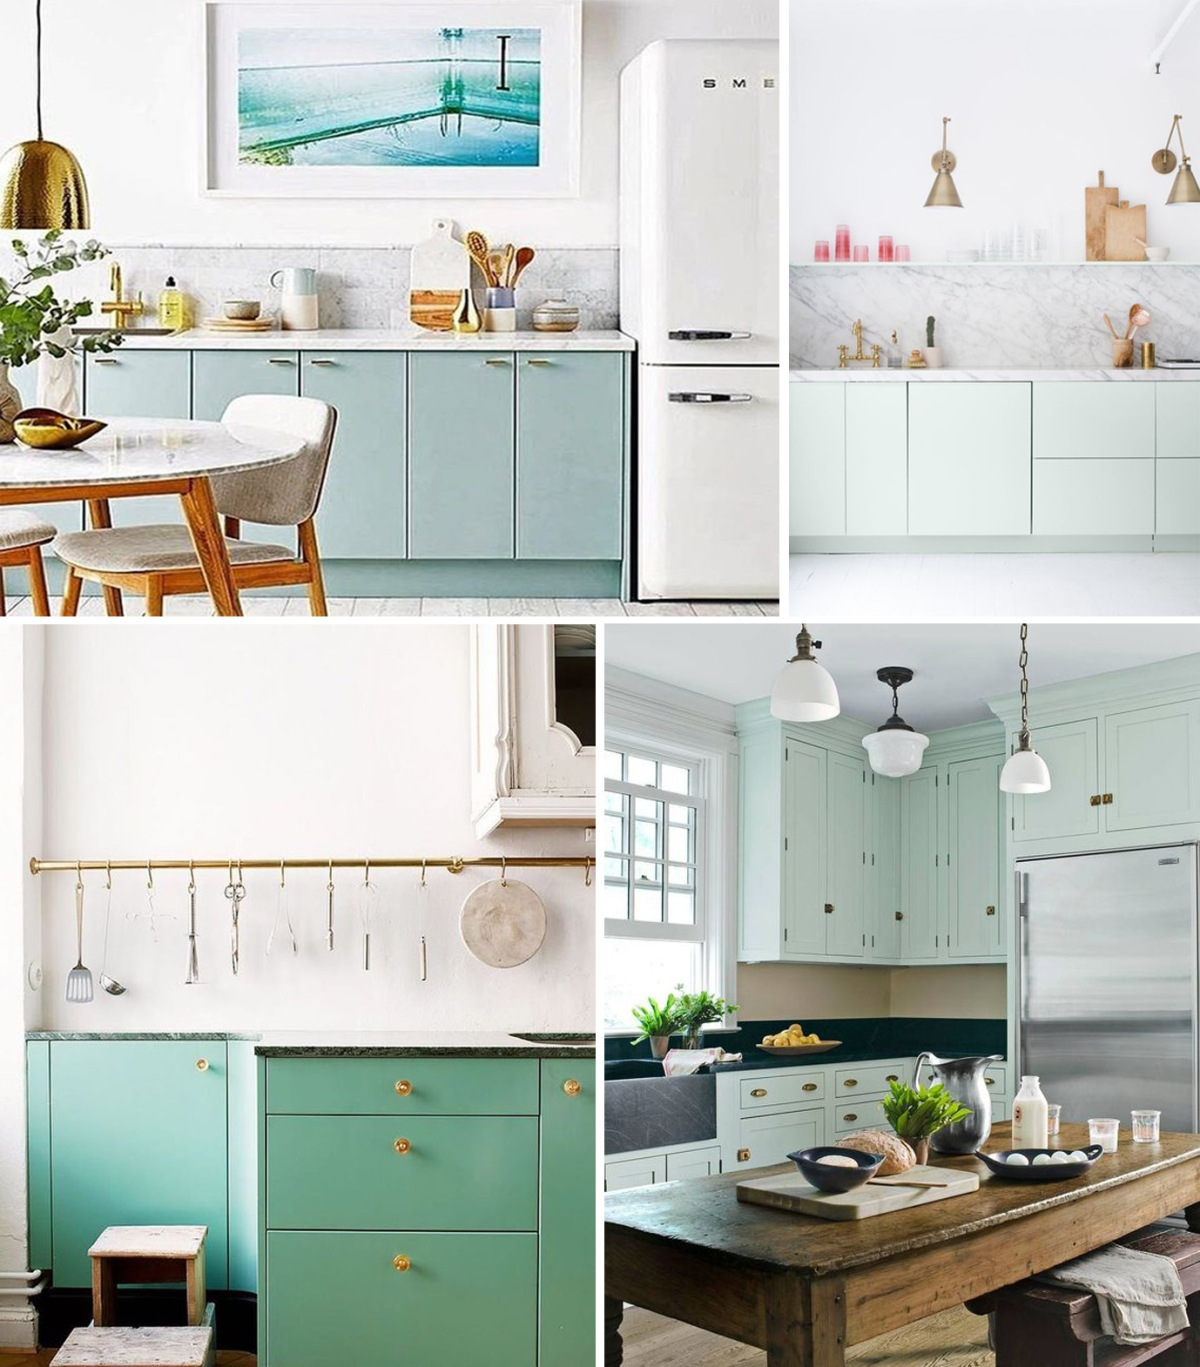 Bringing Color Into The Kitchen Haven By Design